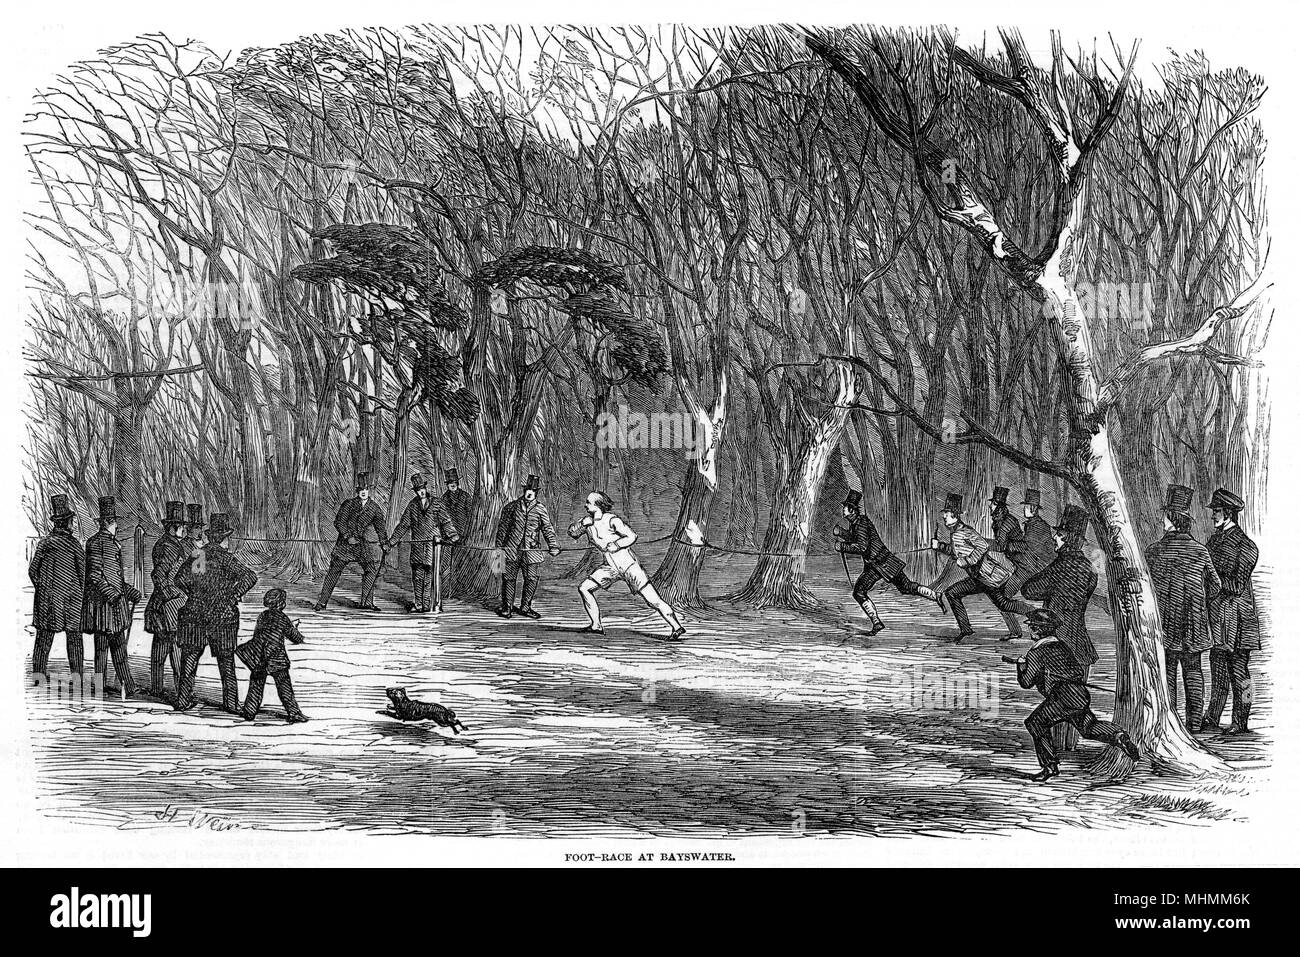 Foot-race at Bayswater - presumably in Hyde Park.       Date: 1851 - Stock Image